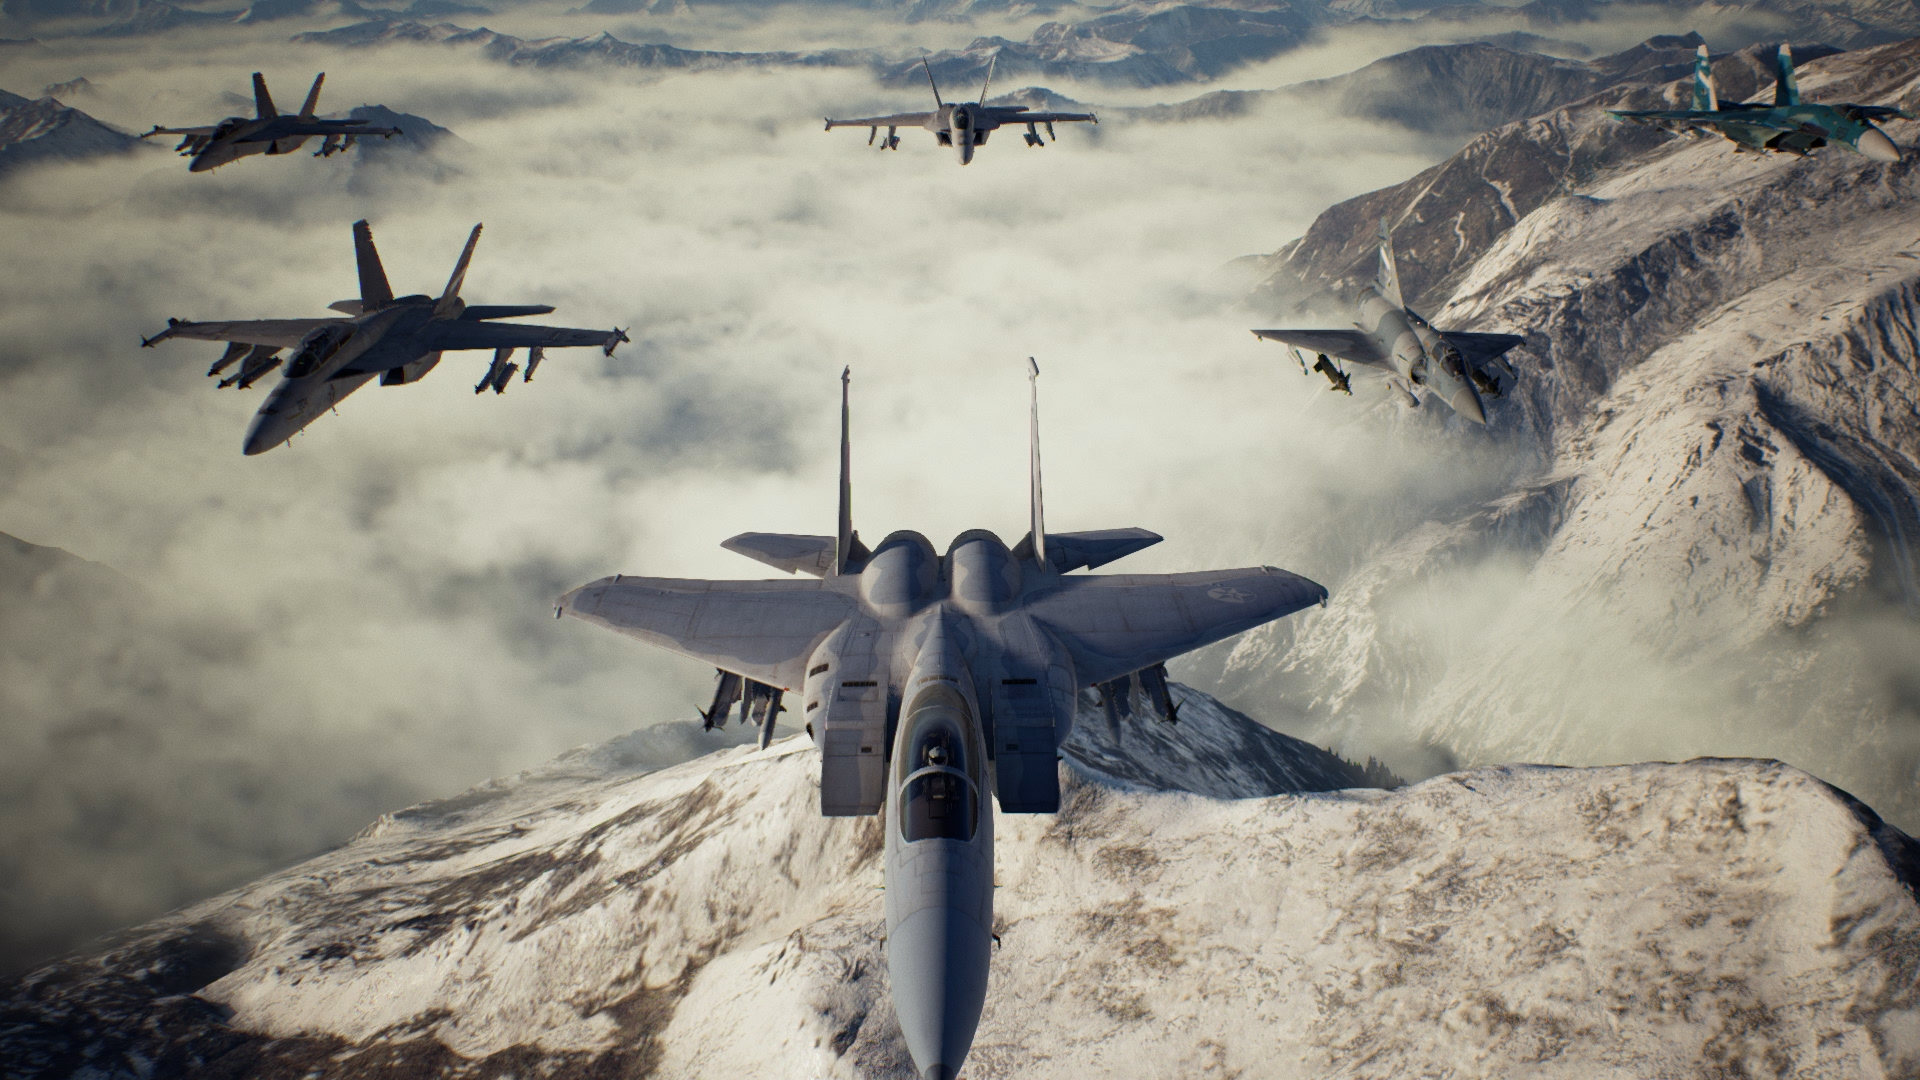 Ace Combat 7 hands-on preview and interview – 'what's fun for the players is being good at something that's not easy'